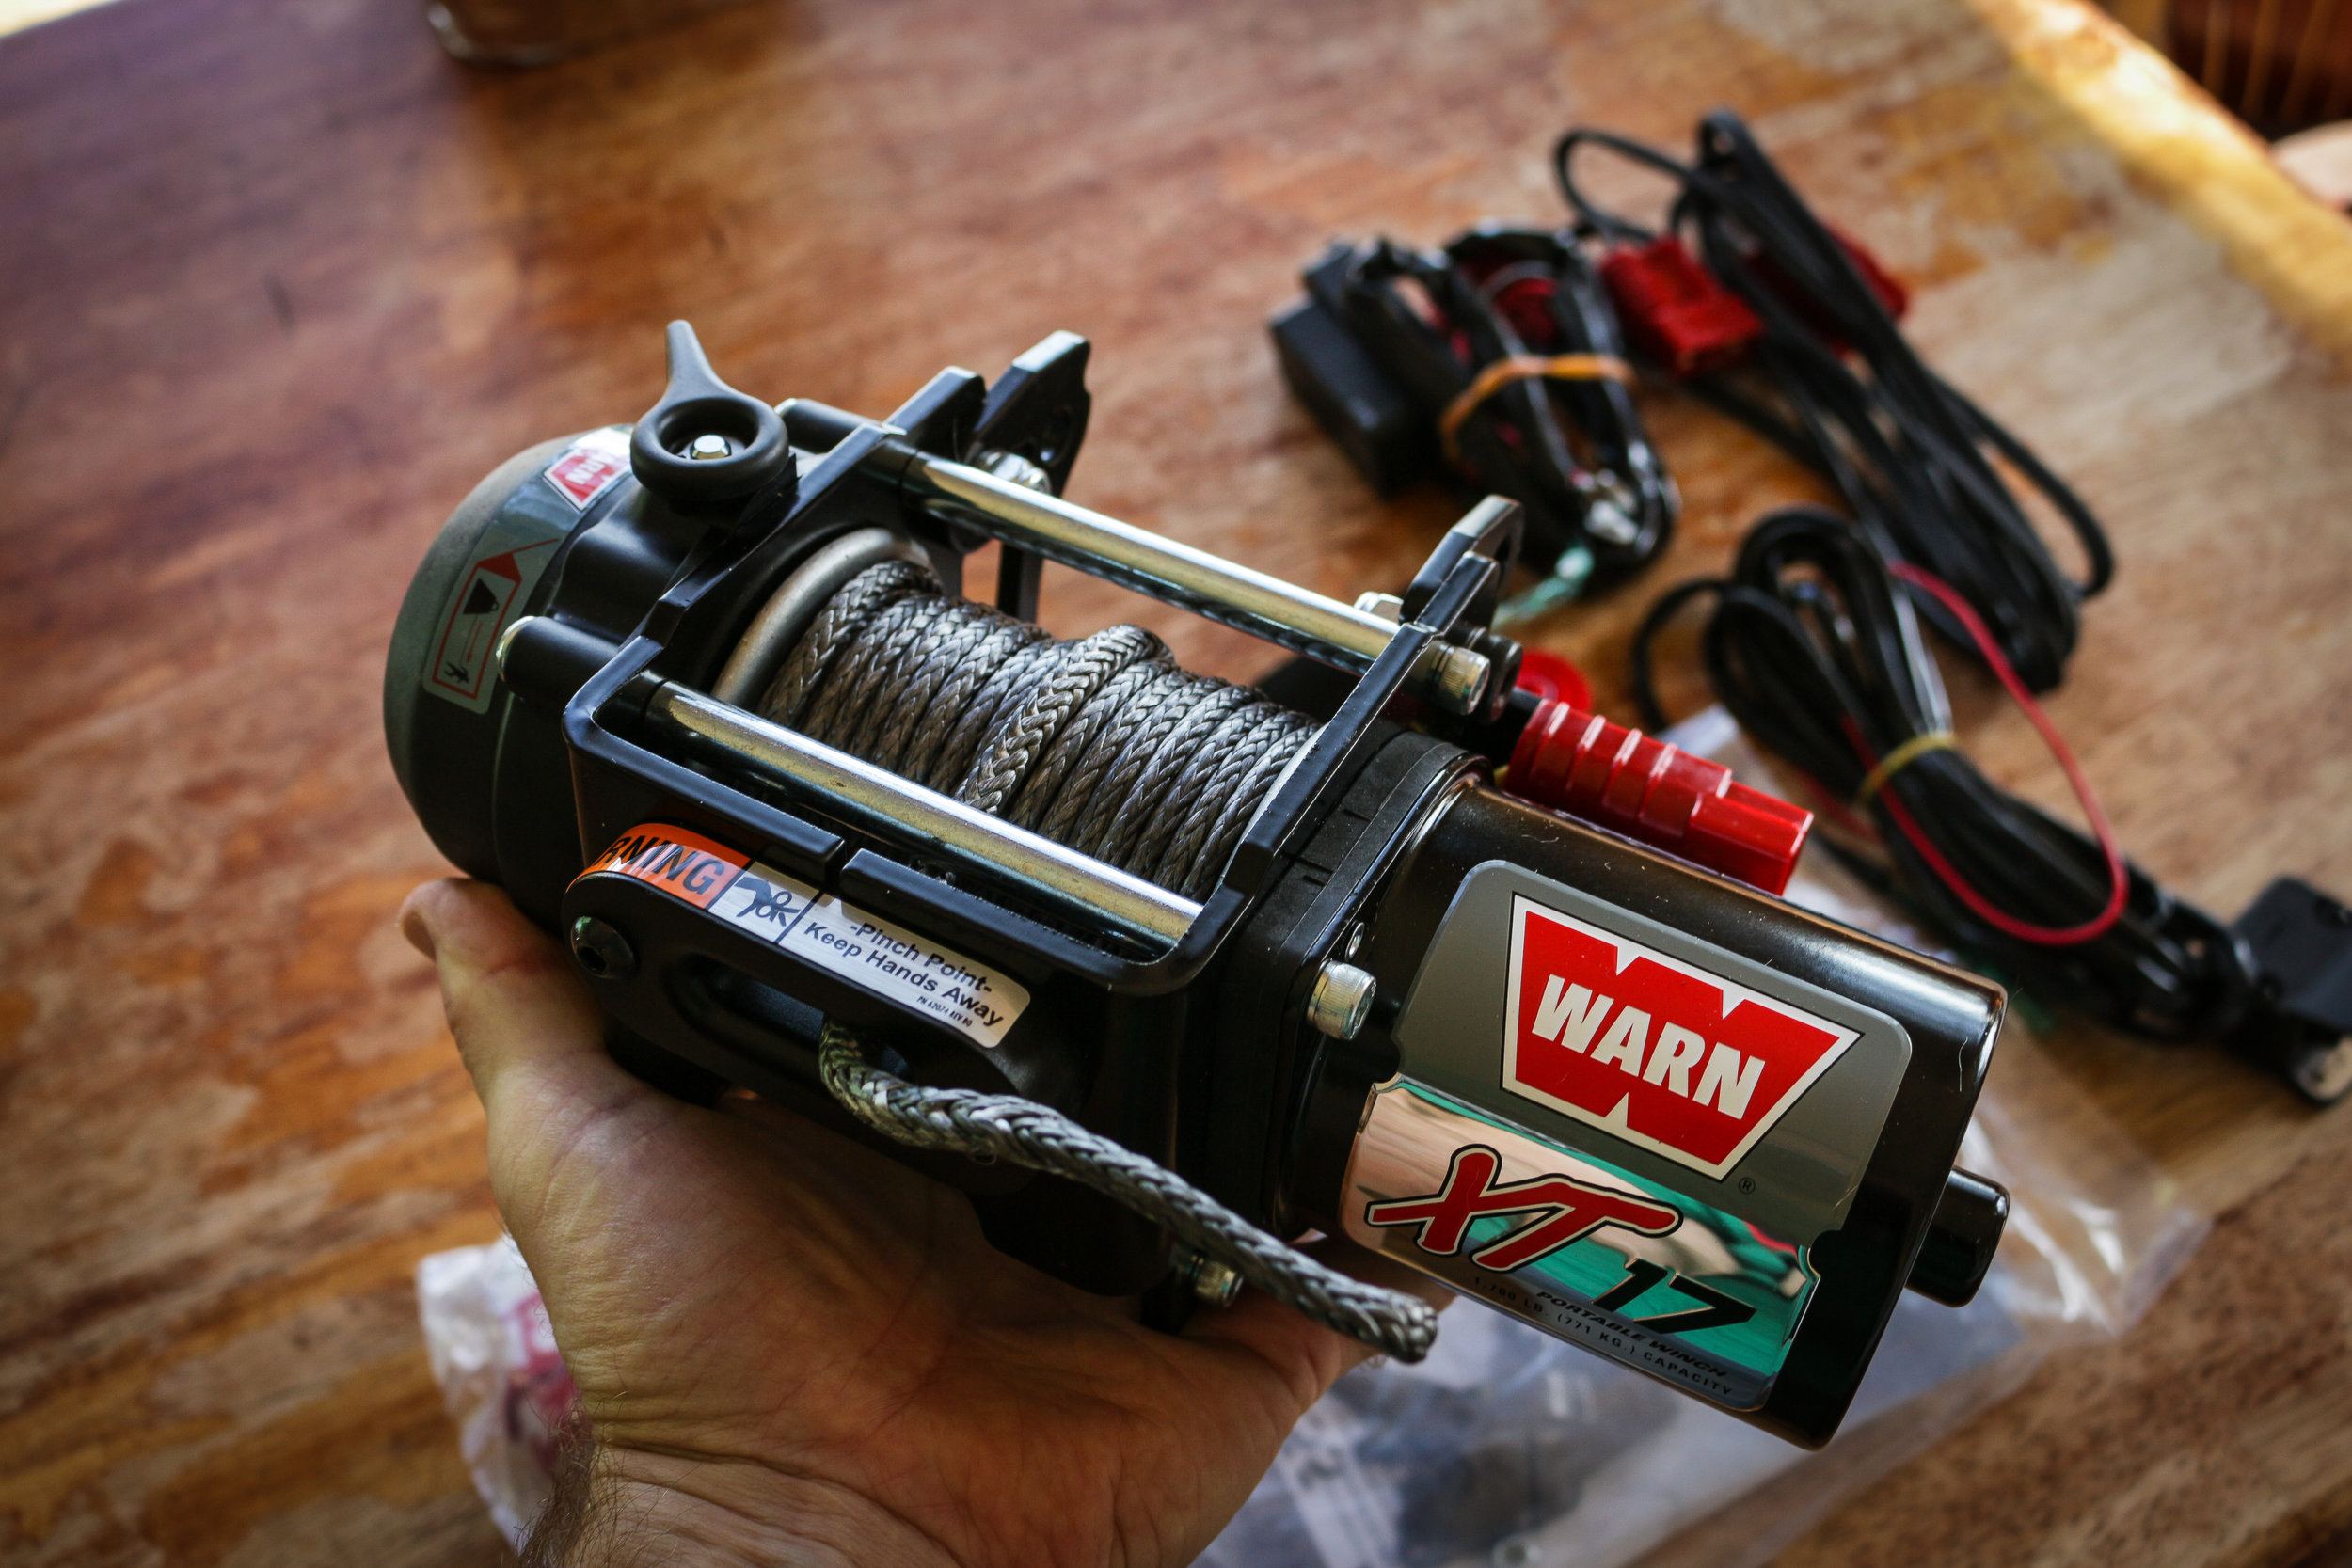 Motorcycle Extraction Gear - Adventure Rider Radio Motorcycle Podcast (1 of 1)-38.jpg